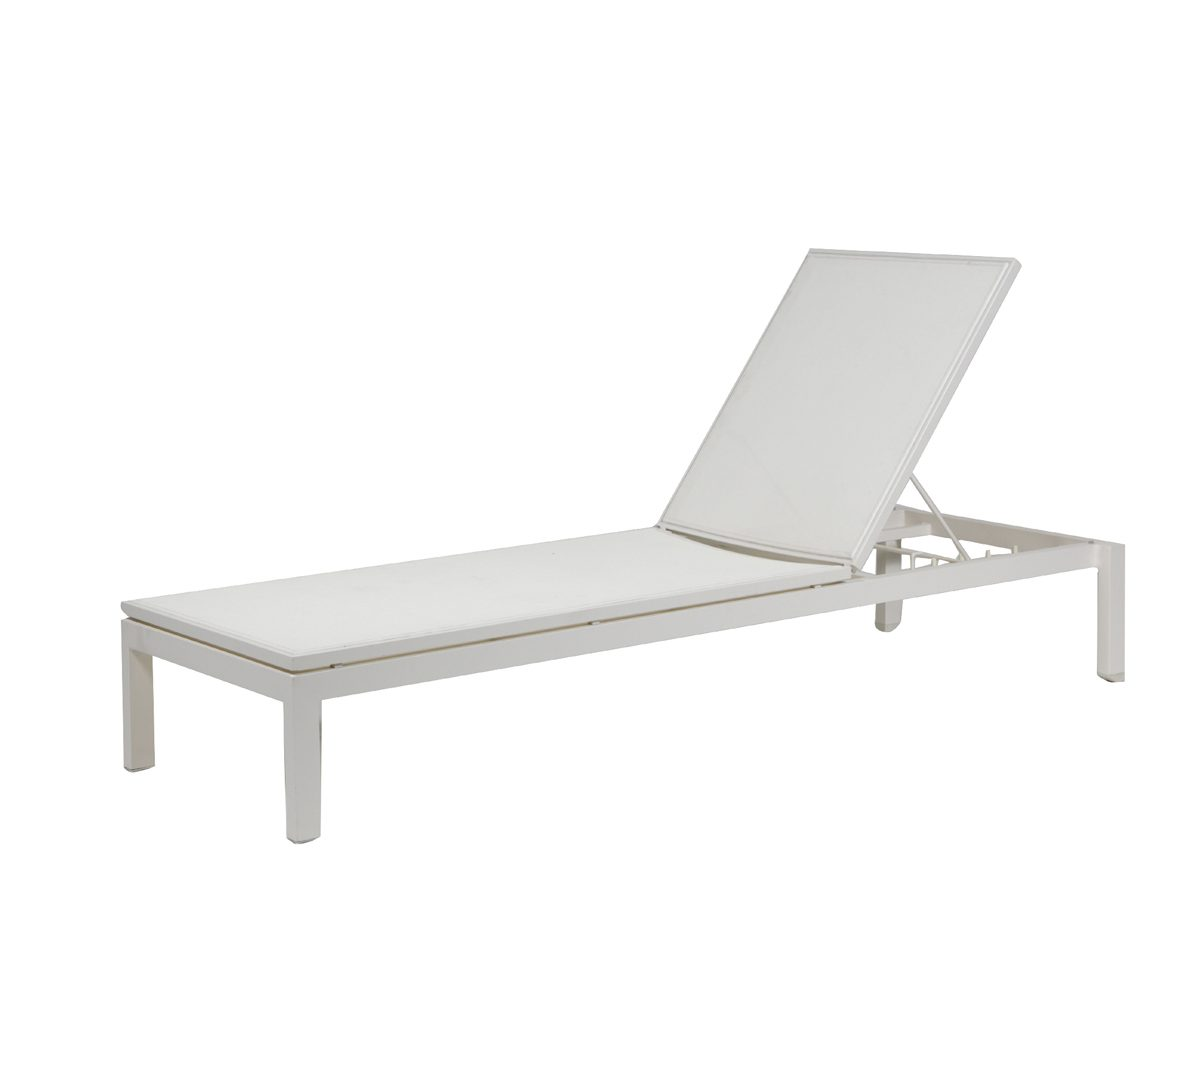 Ratana Tosca lounger in white metal frame with white mesh finish